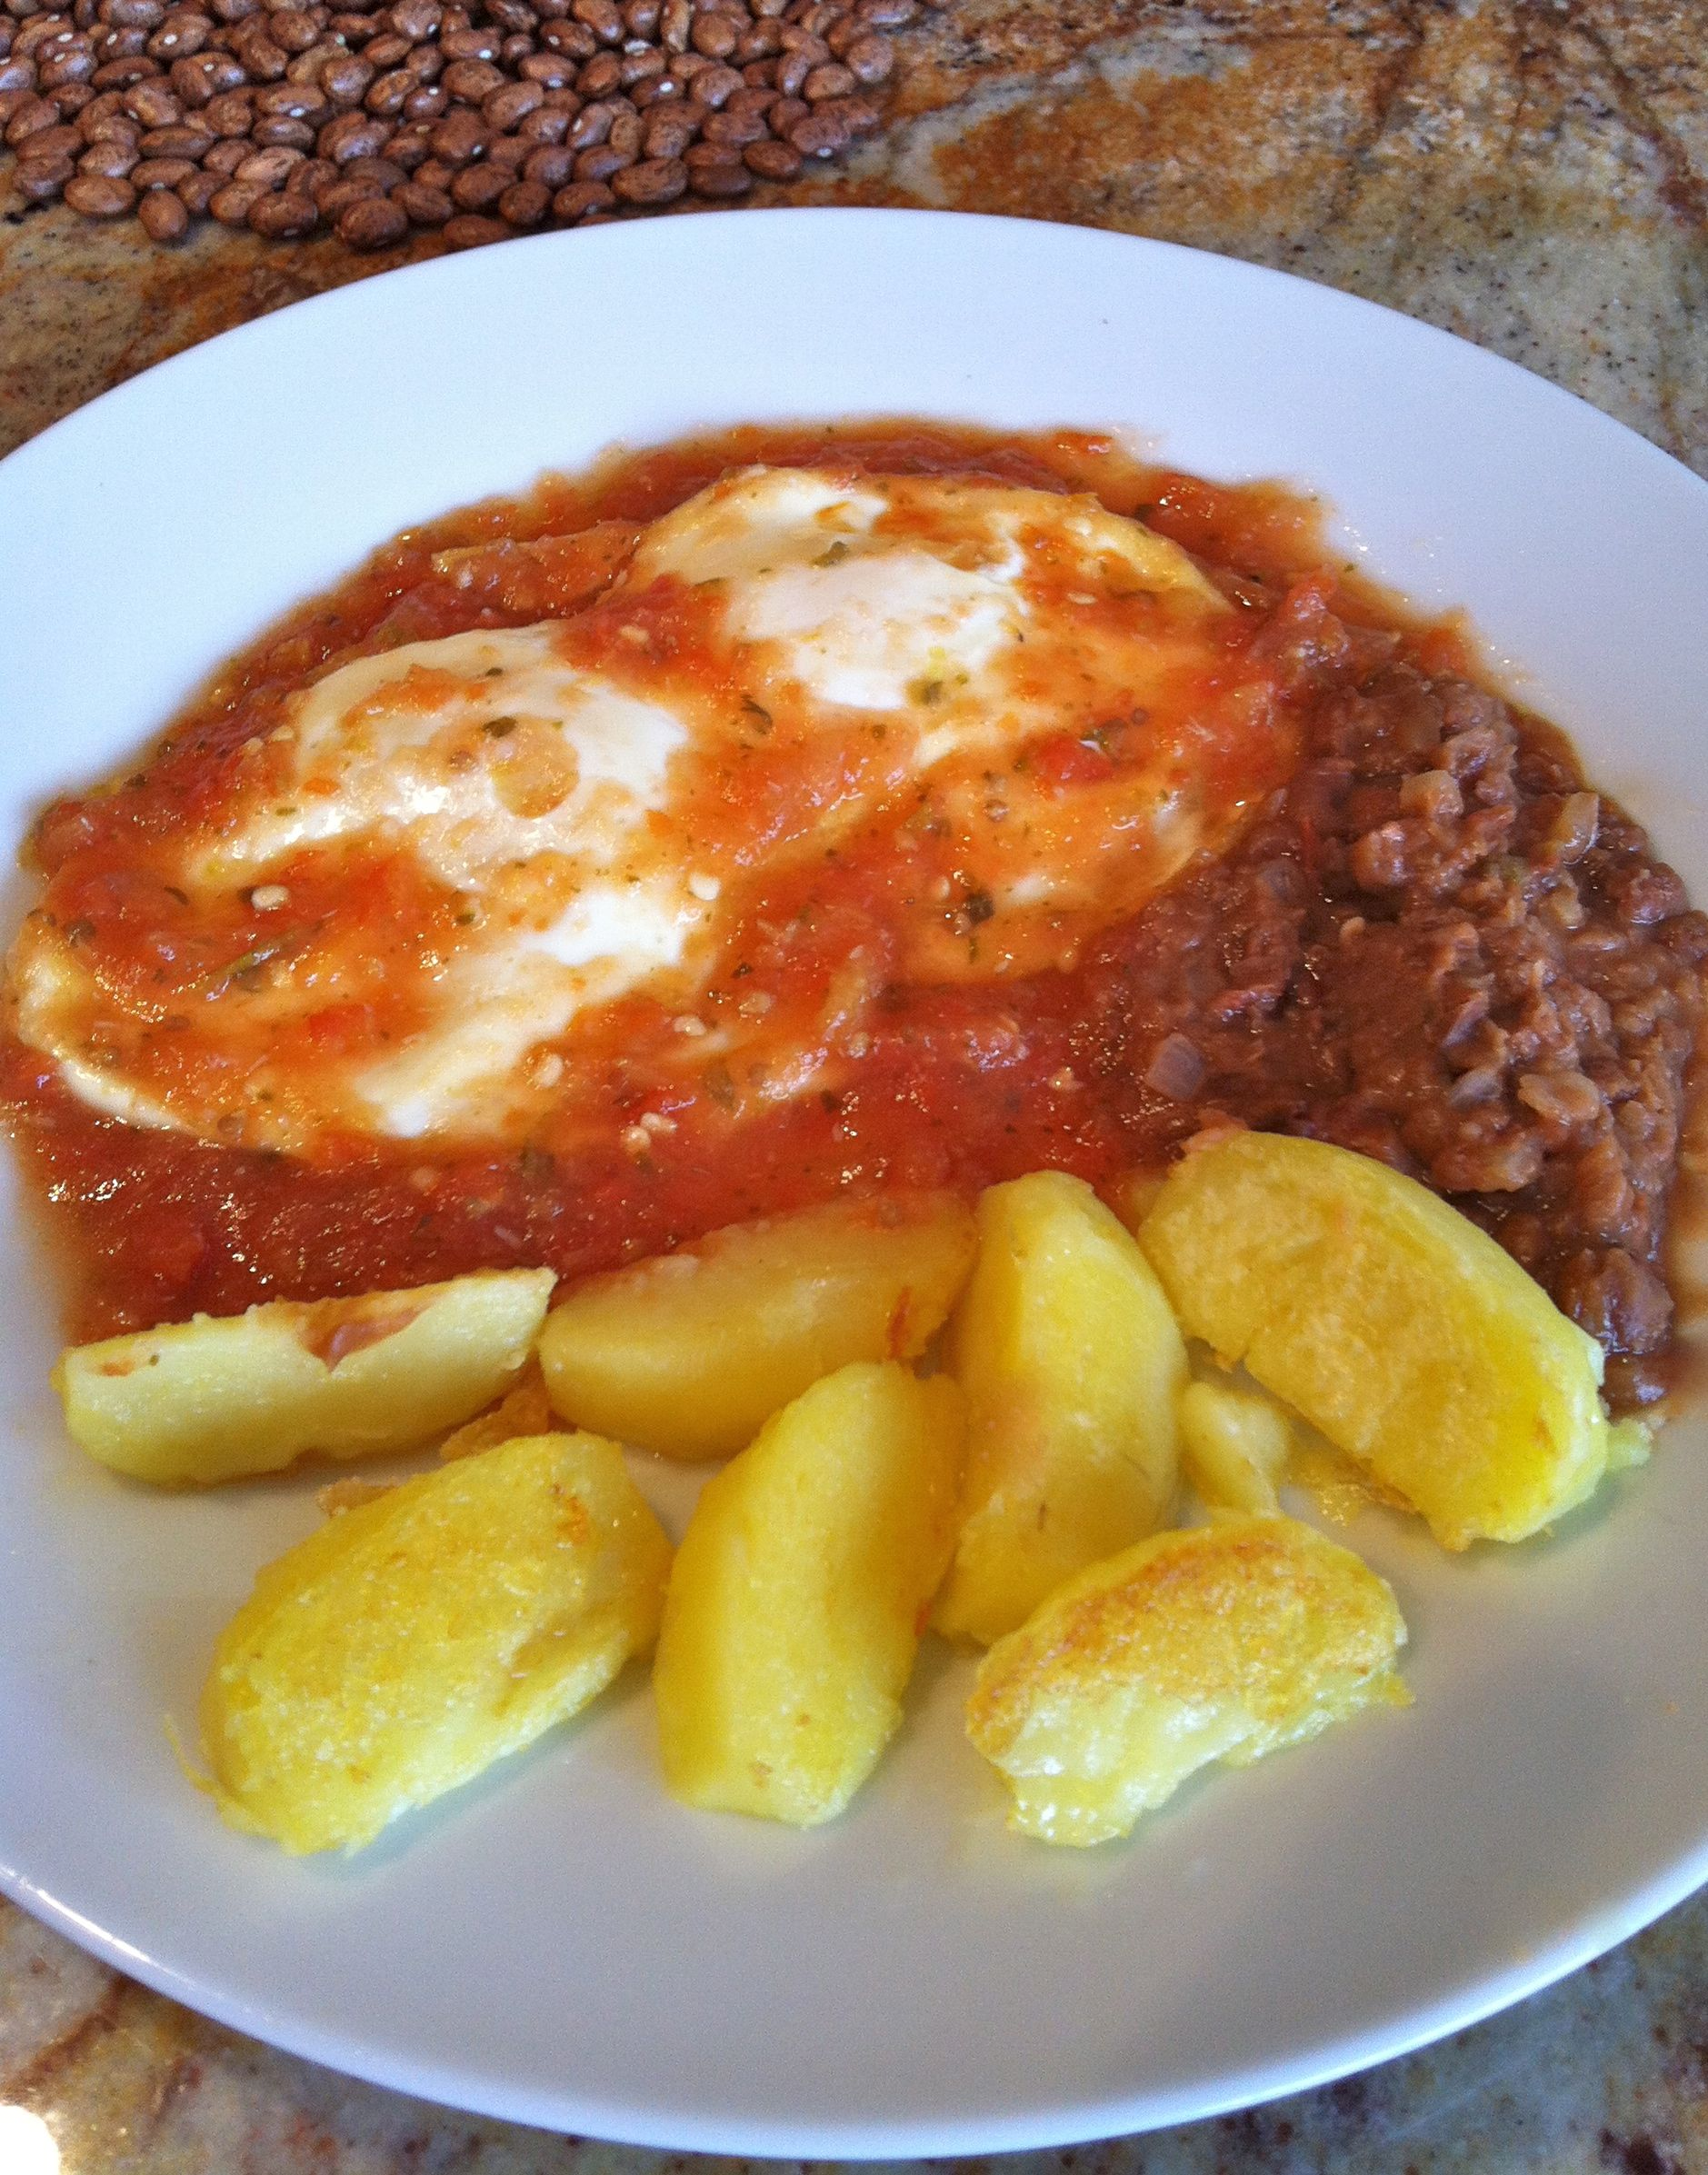 Huevos Rancheros made with fresh ingredients, little fat